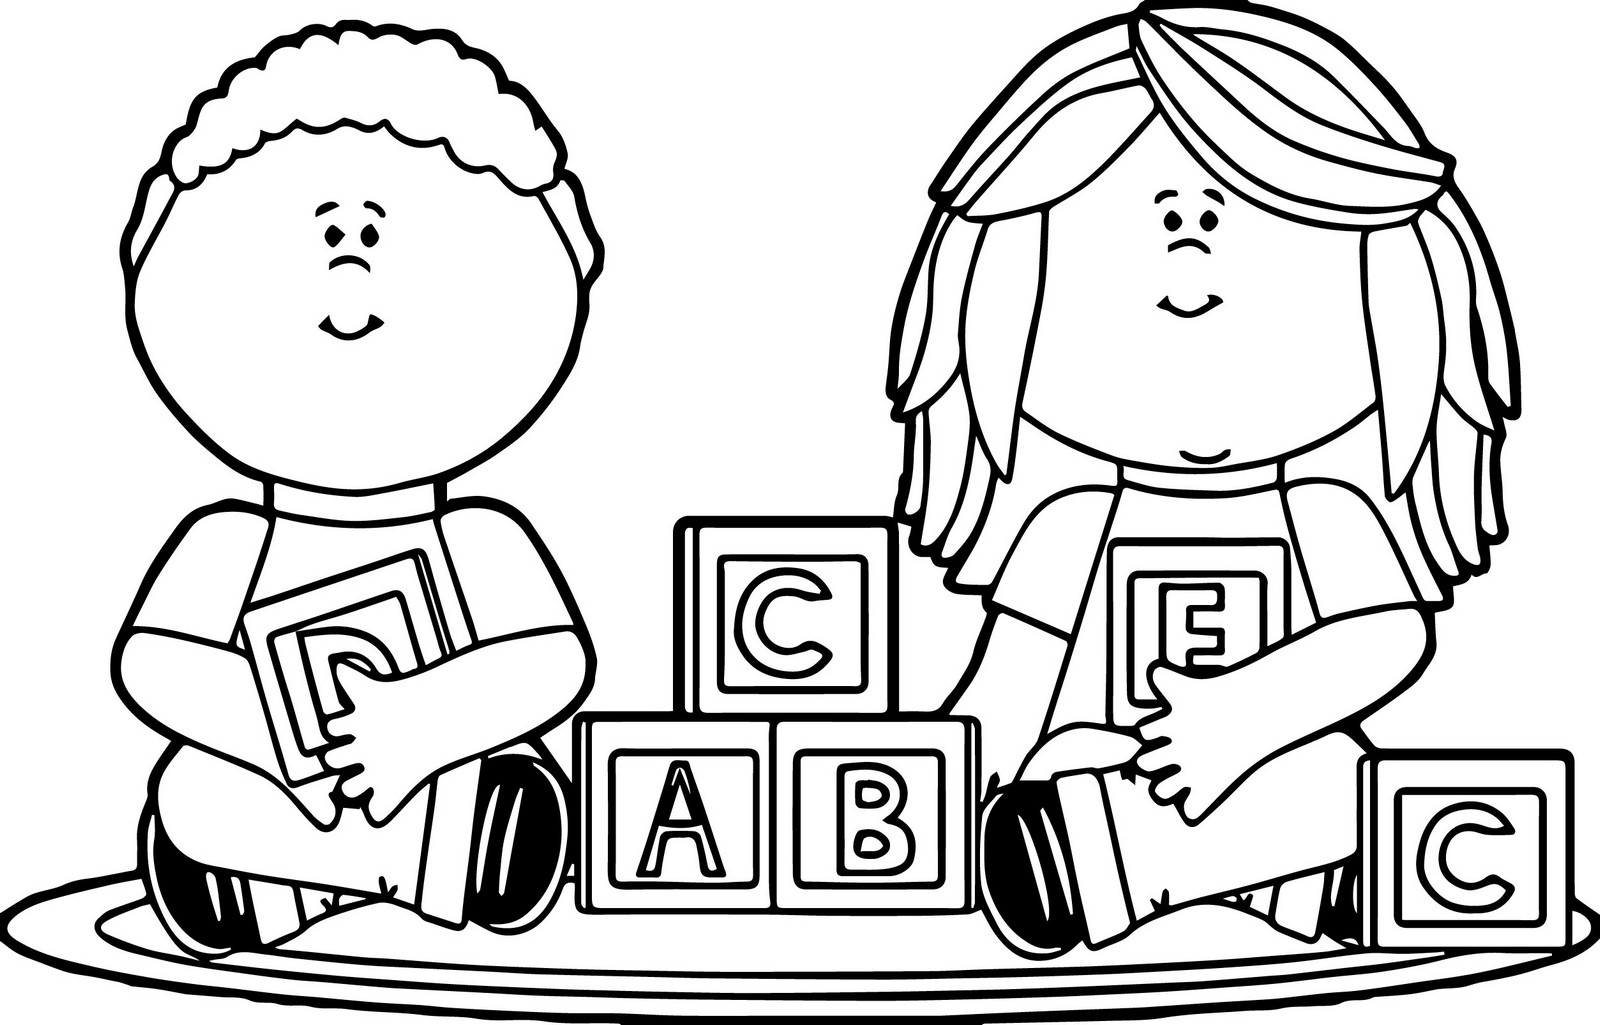 Kids Playing ABC Blocks Toys Coloring Page